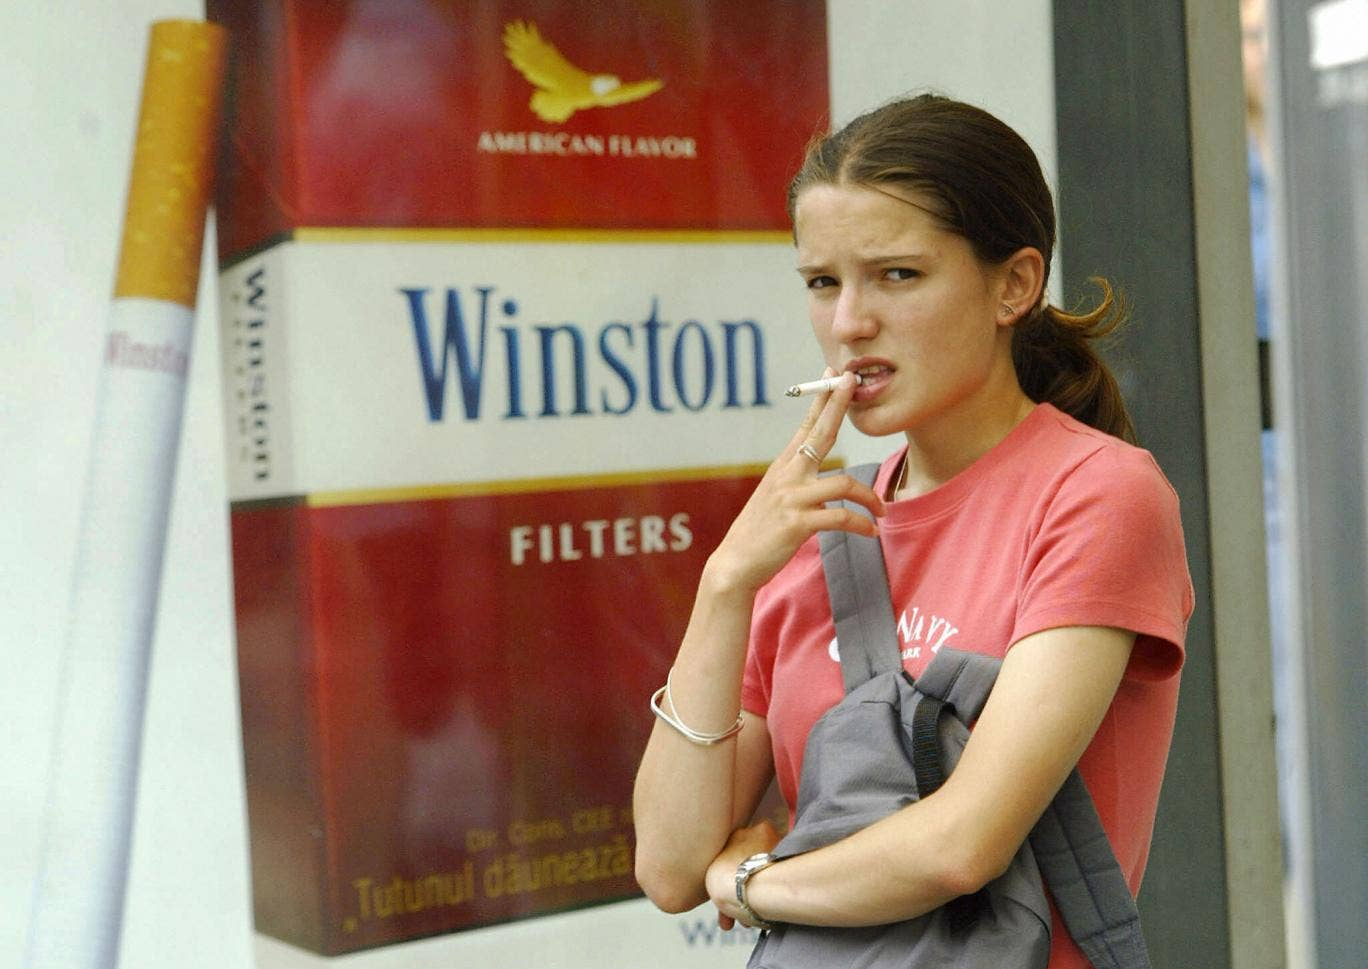 A young girl smokes near a commercial for cigarettes